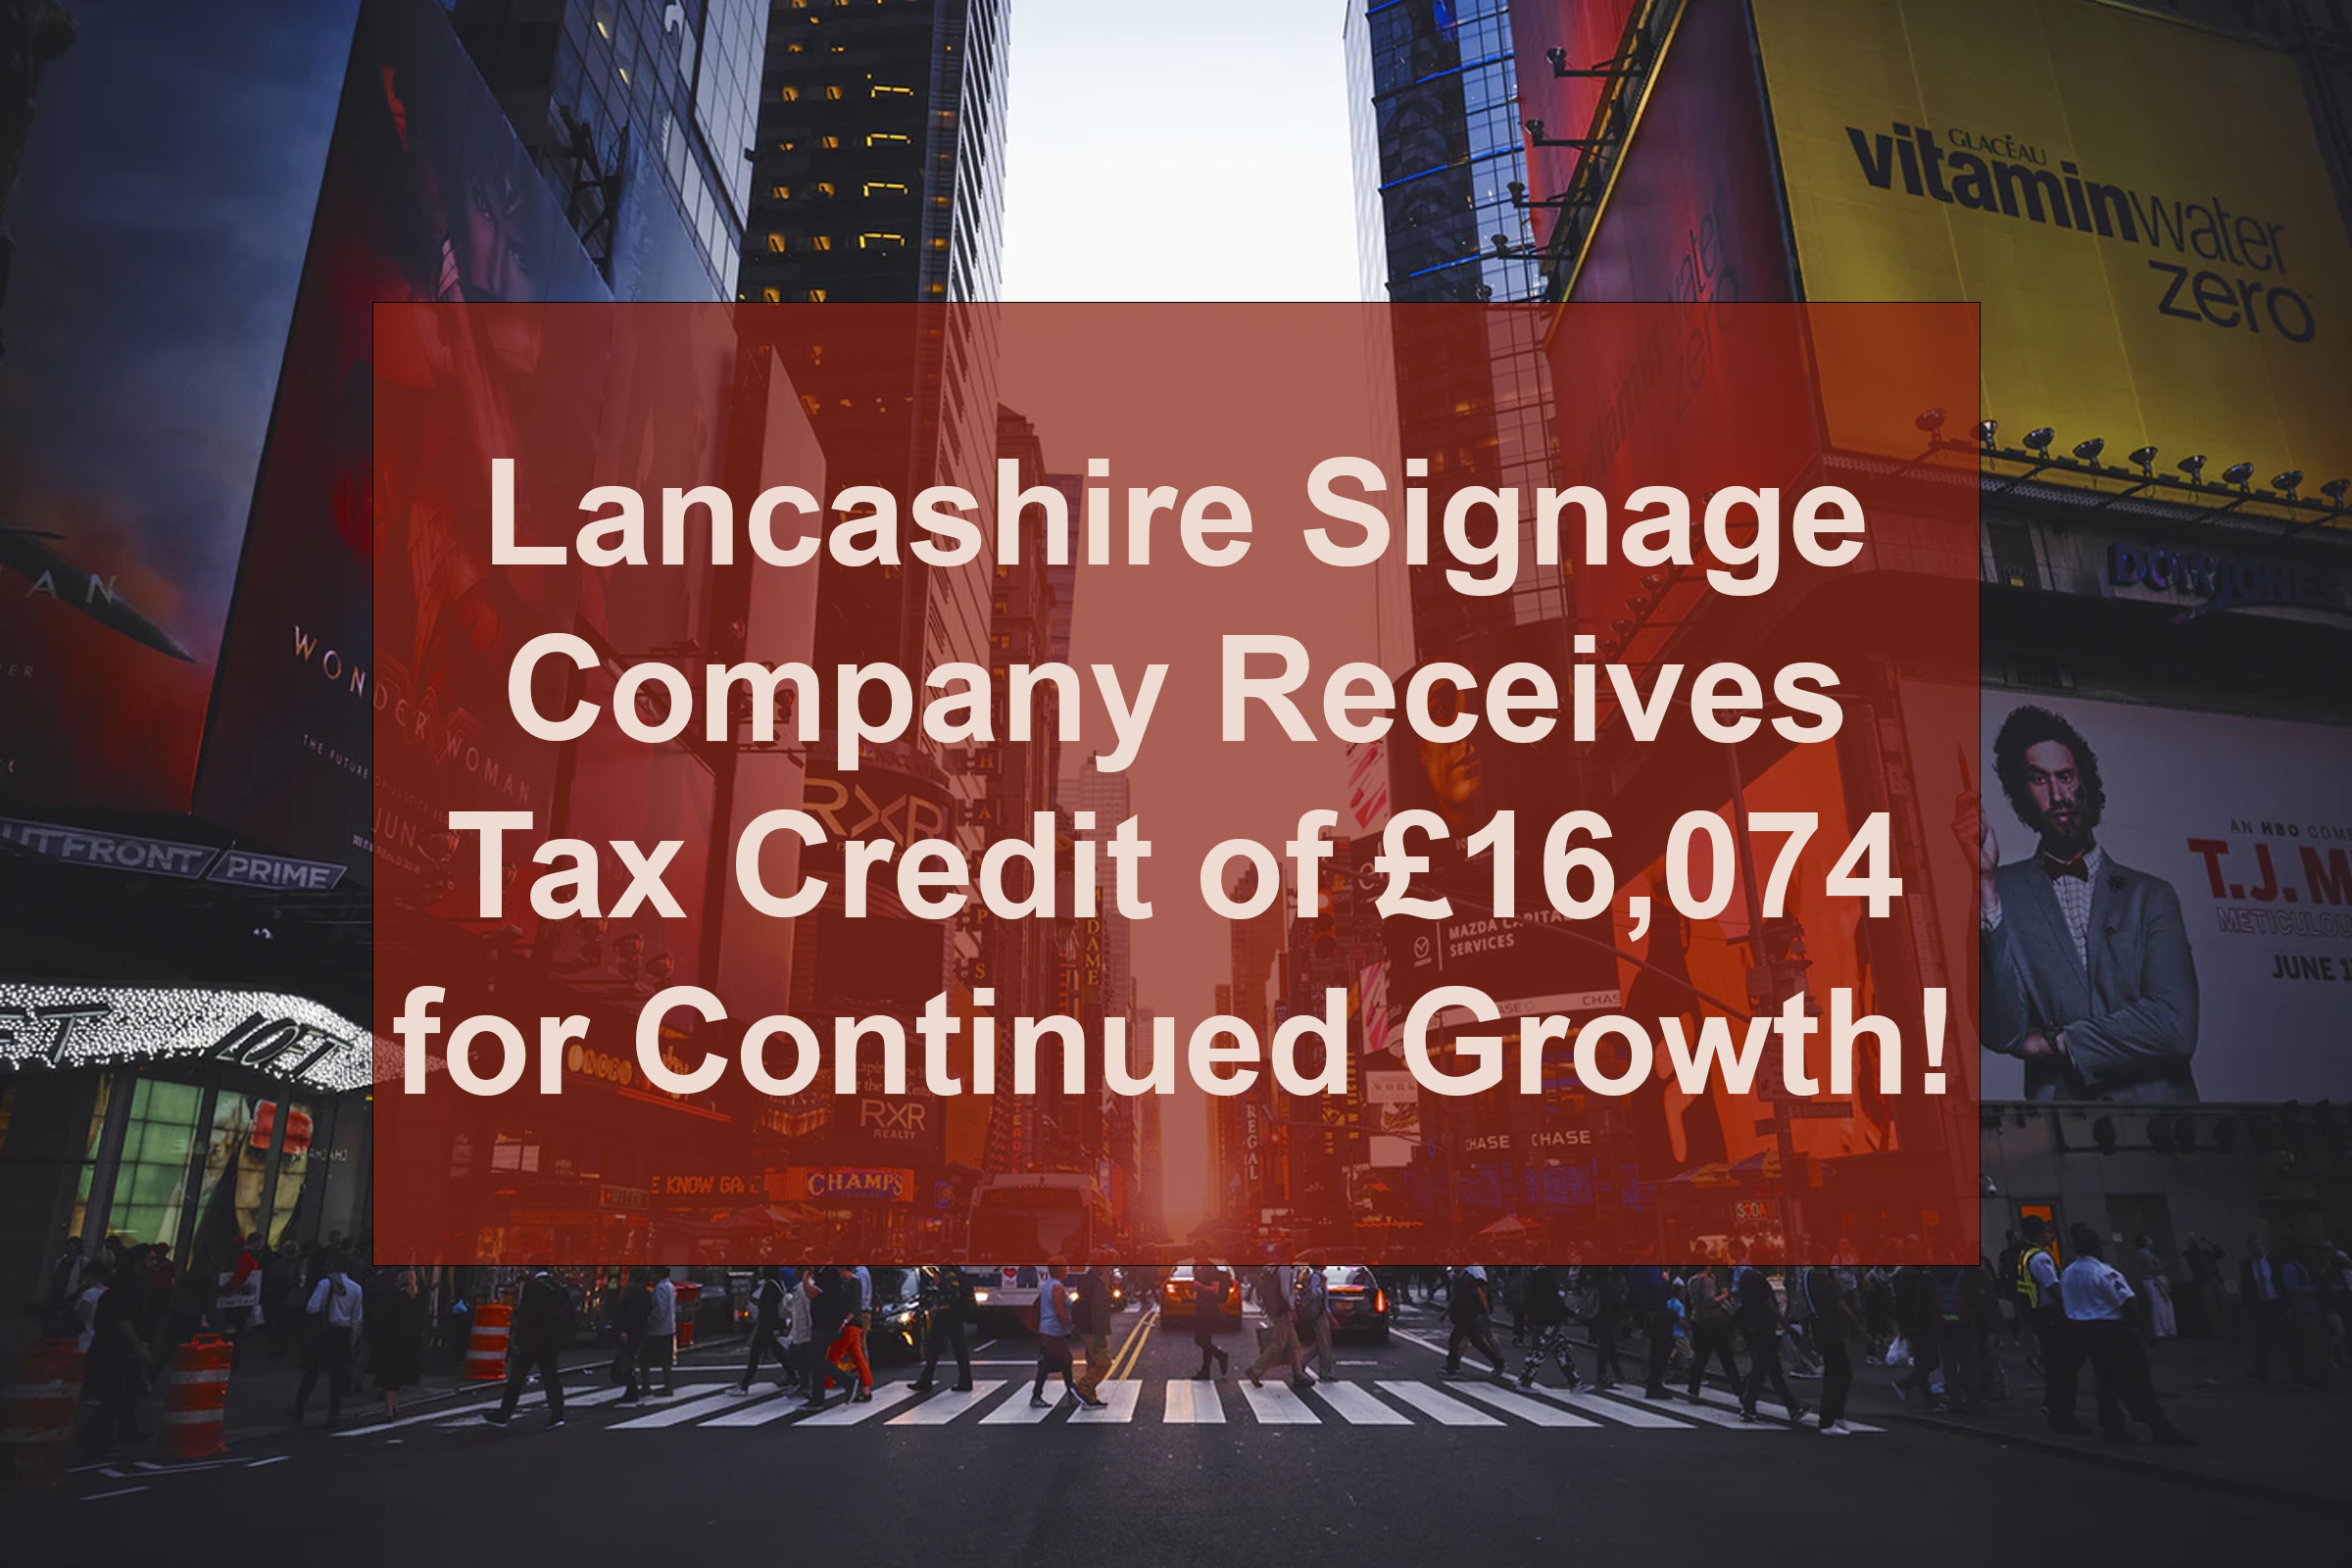 Lancashire Signage Company Receives Tax Credit of £16,074 for Continued Growth!